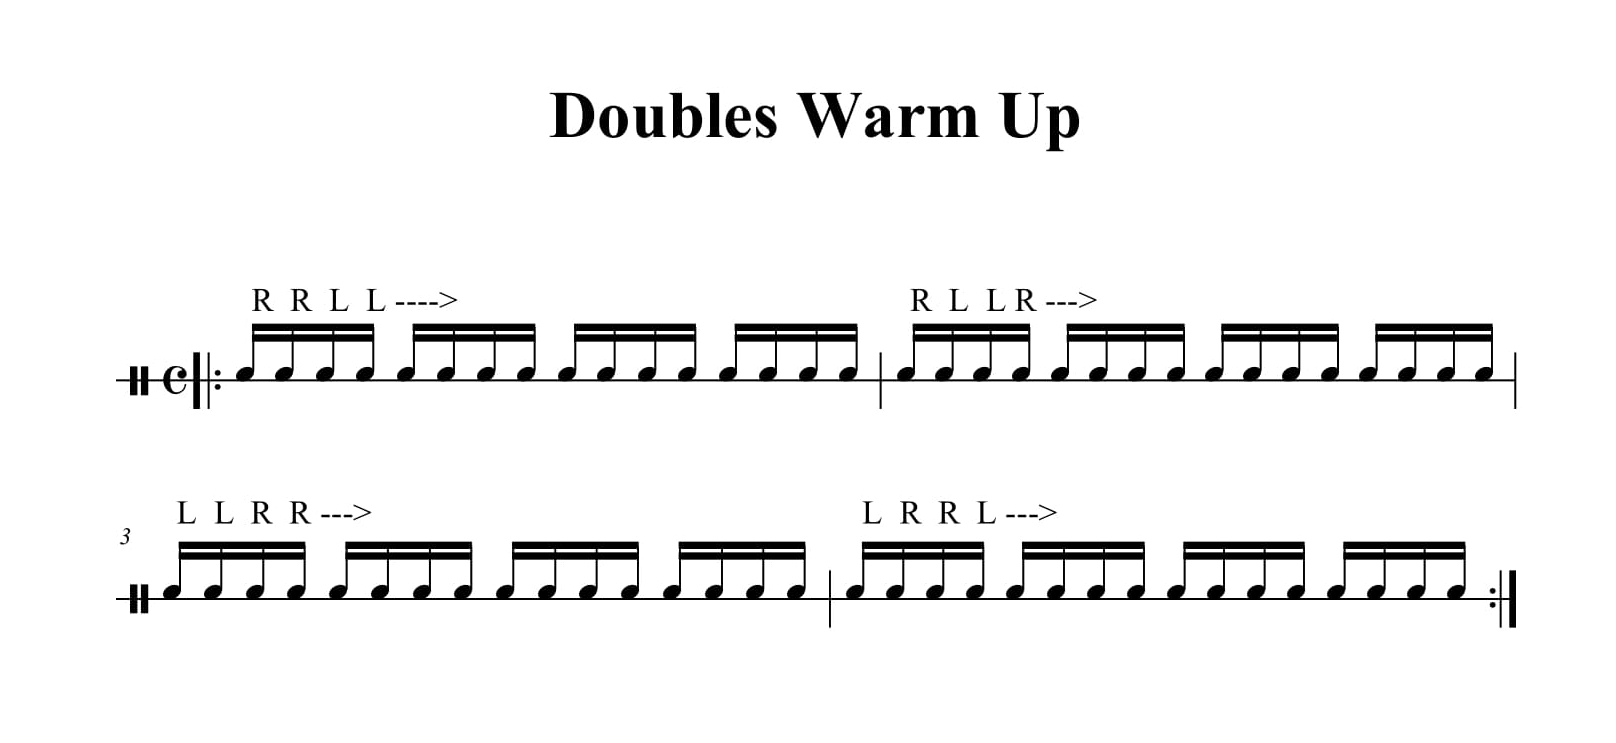 wmdrums_doubles_warmup.jpg